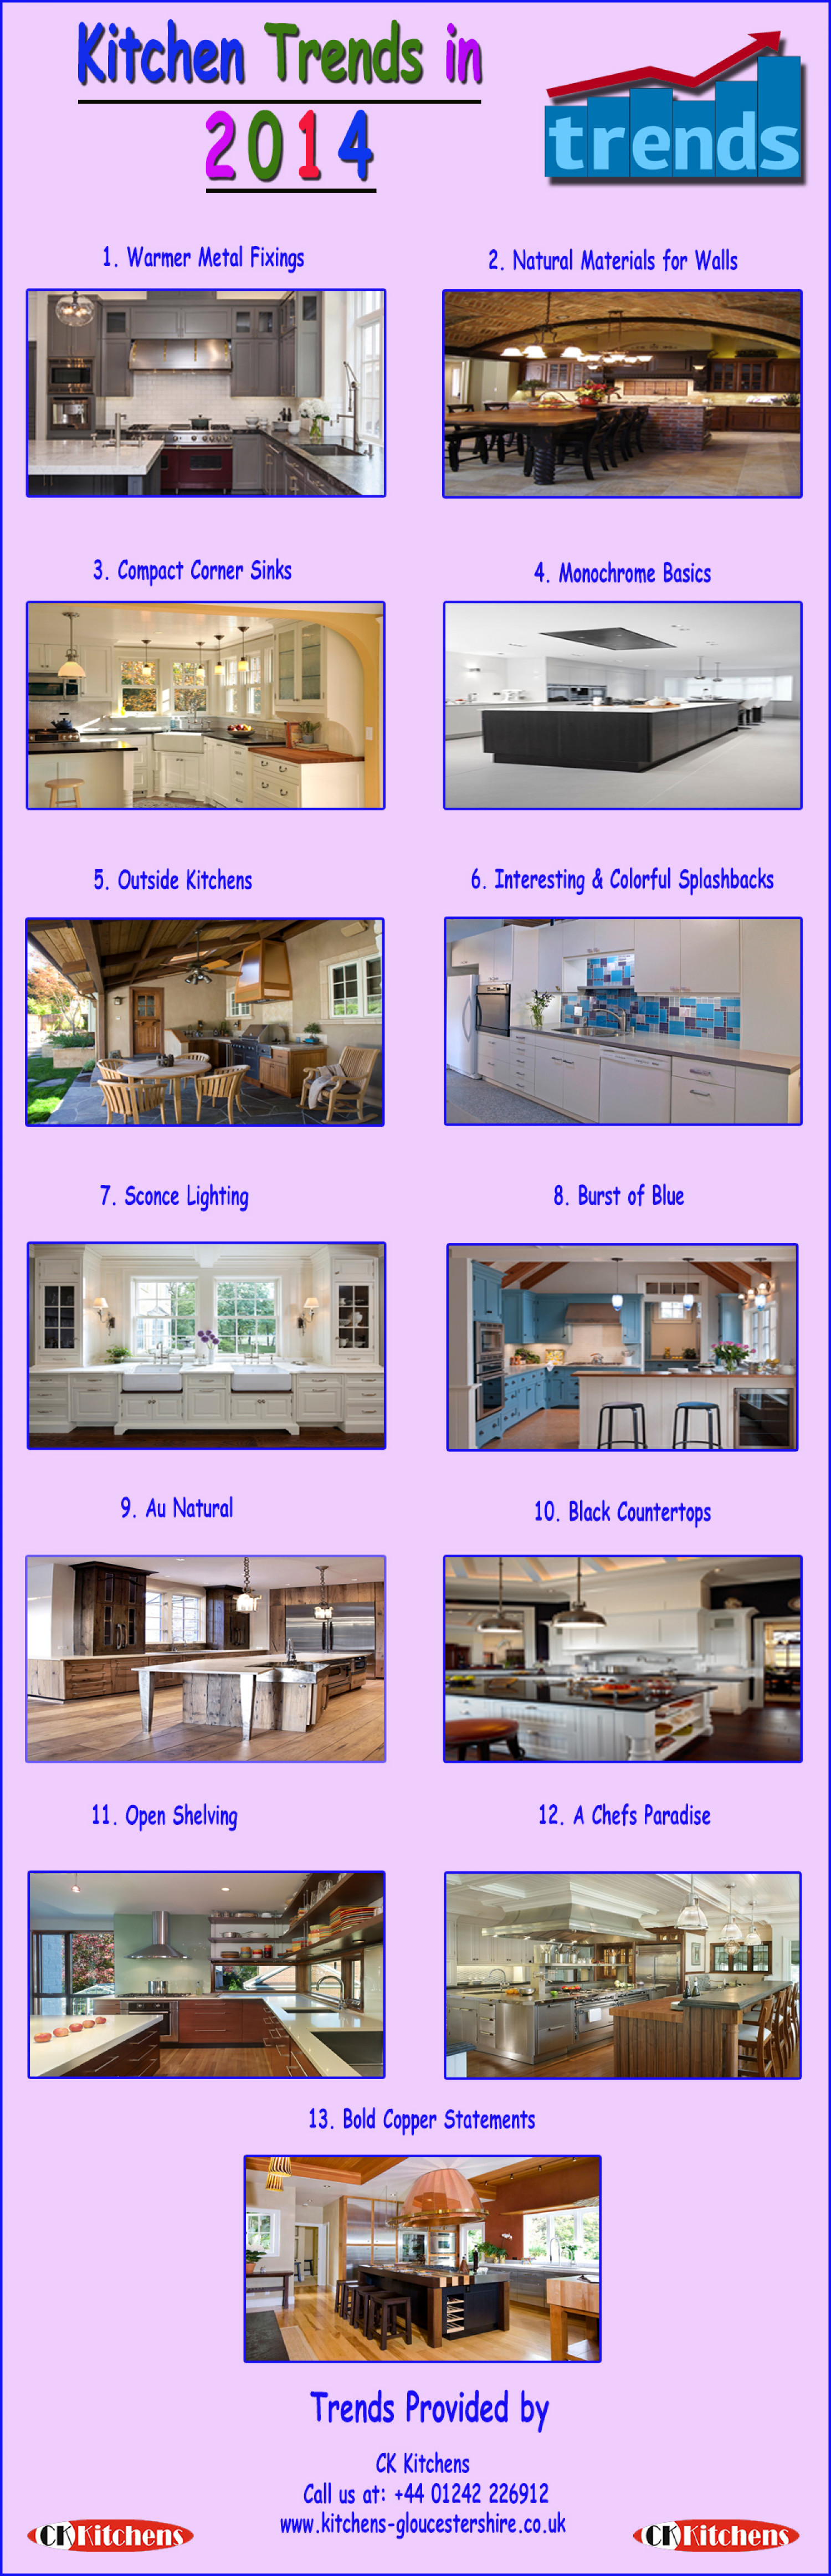 Kitchen Trends 2014 Infographic